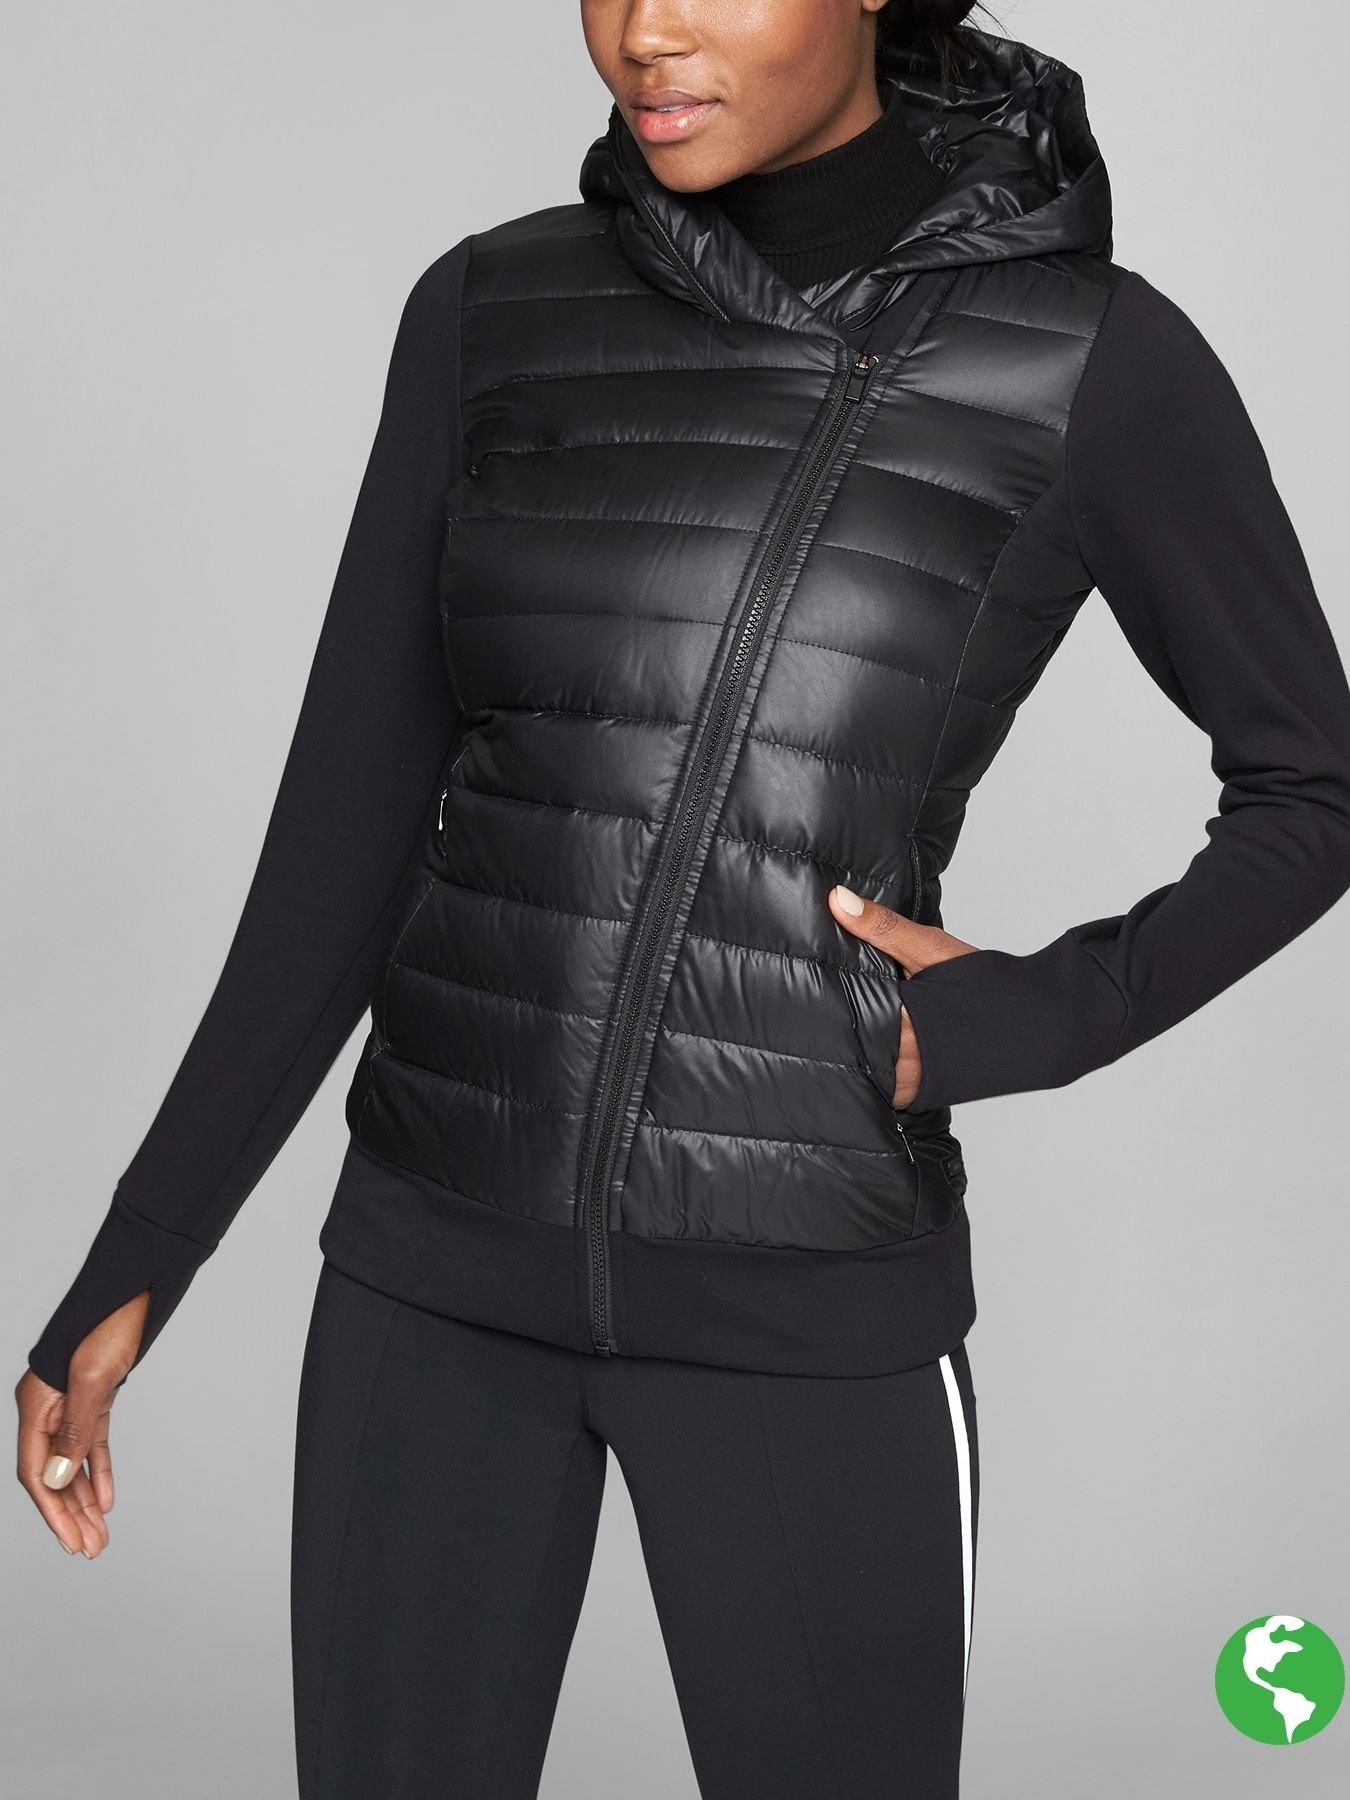 2098839eeb4 ON SALE   Athleta! Responsible Down Sweatshirt. Your favorite hoodie is now  the perfect core warming piece with cozy